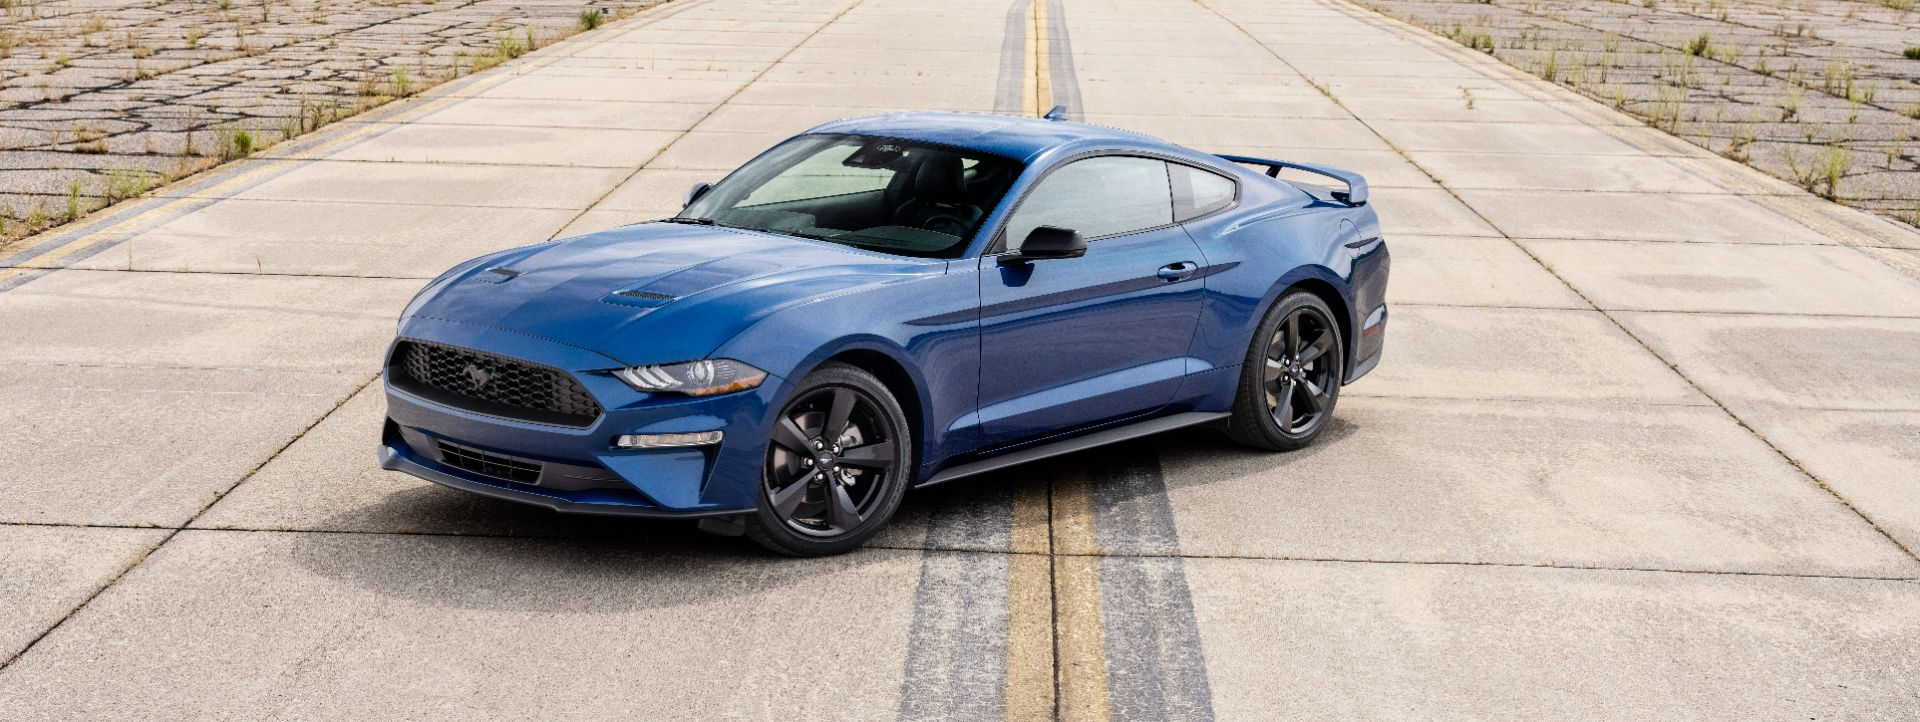 ford mustang stealth edition appearance package 9